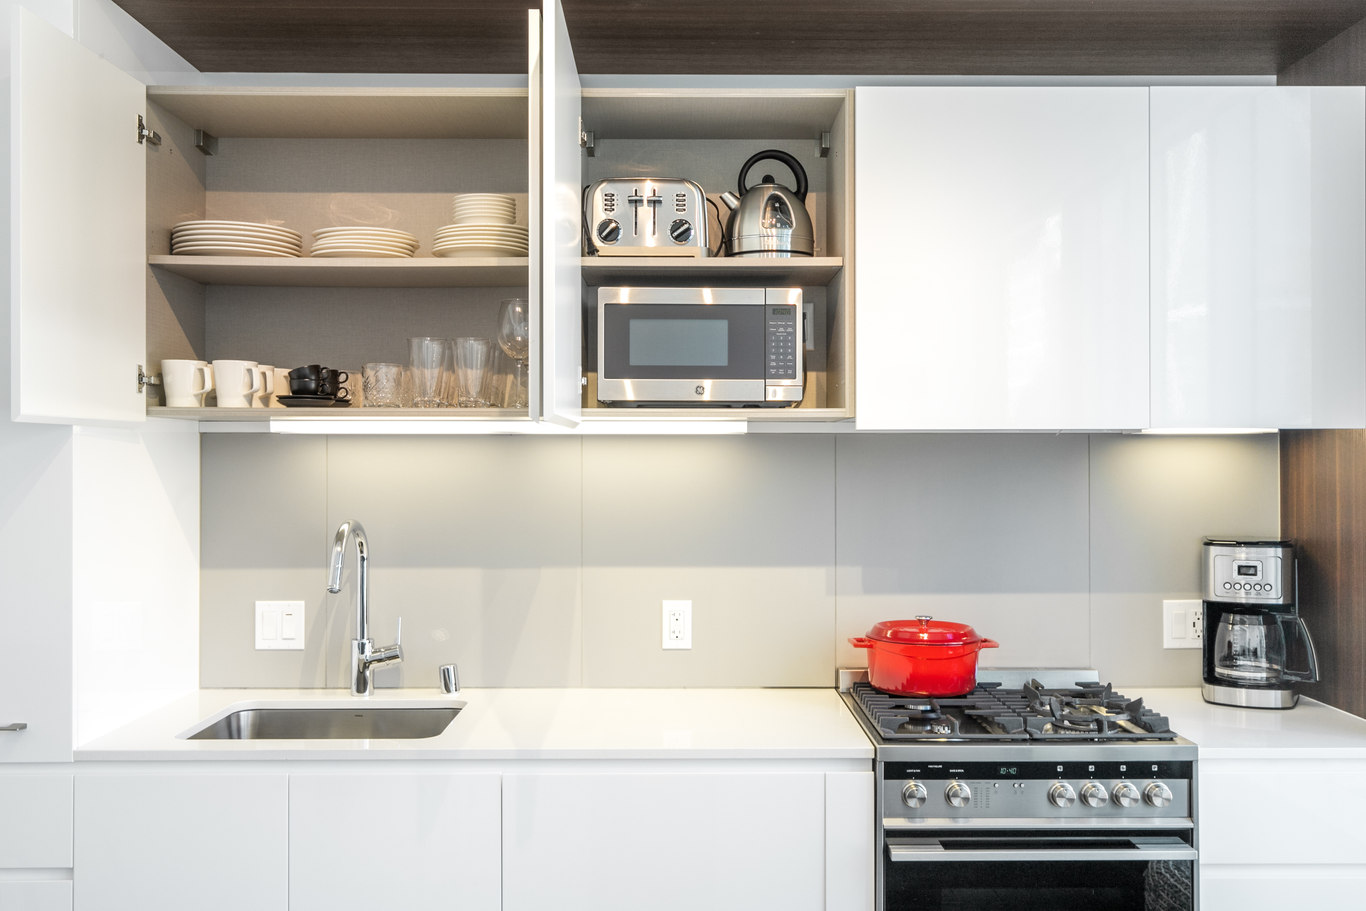 Kitchen at 33 Tehama Apartments, Rincon Hill, San Francisco